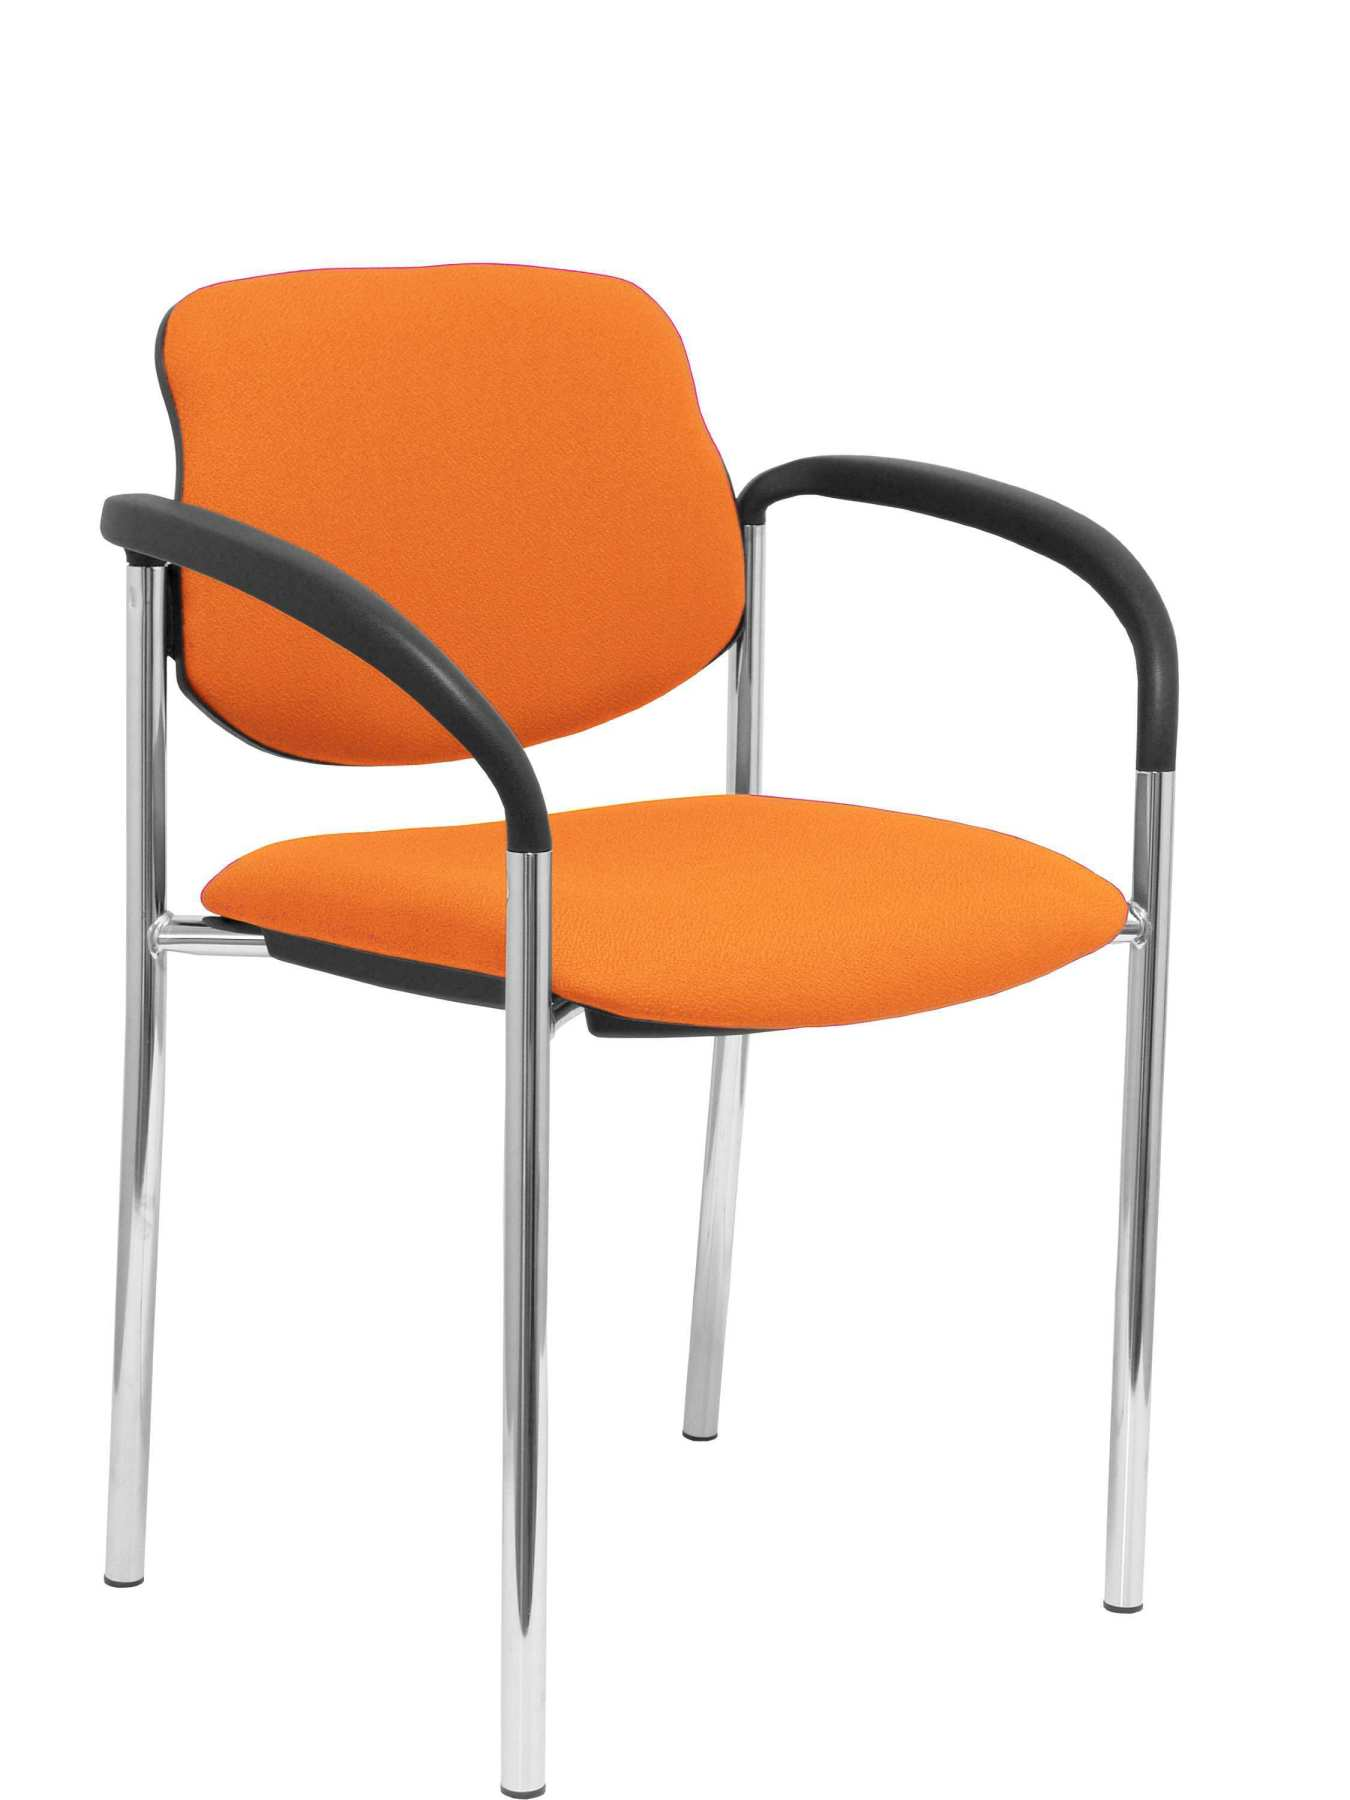 Confident Chair 4-leg And Estructrua Chrome Arms-Seat And Back Upholstered In Fabric BALI Orange